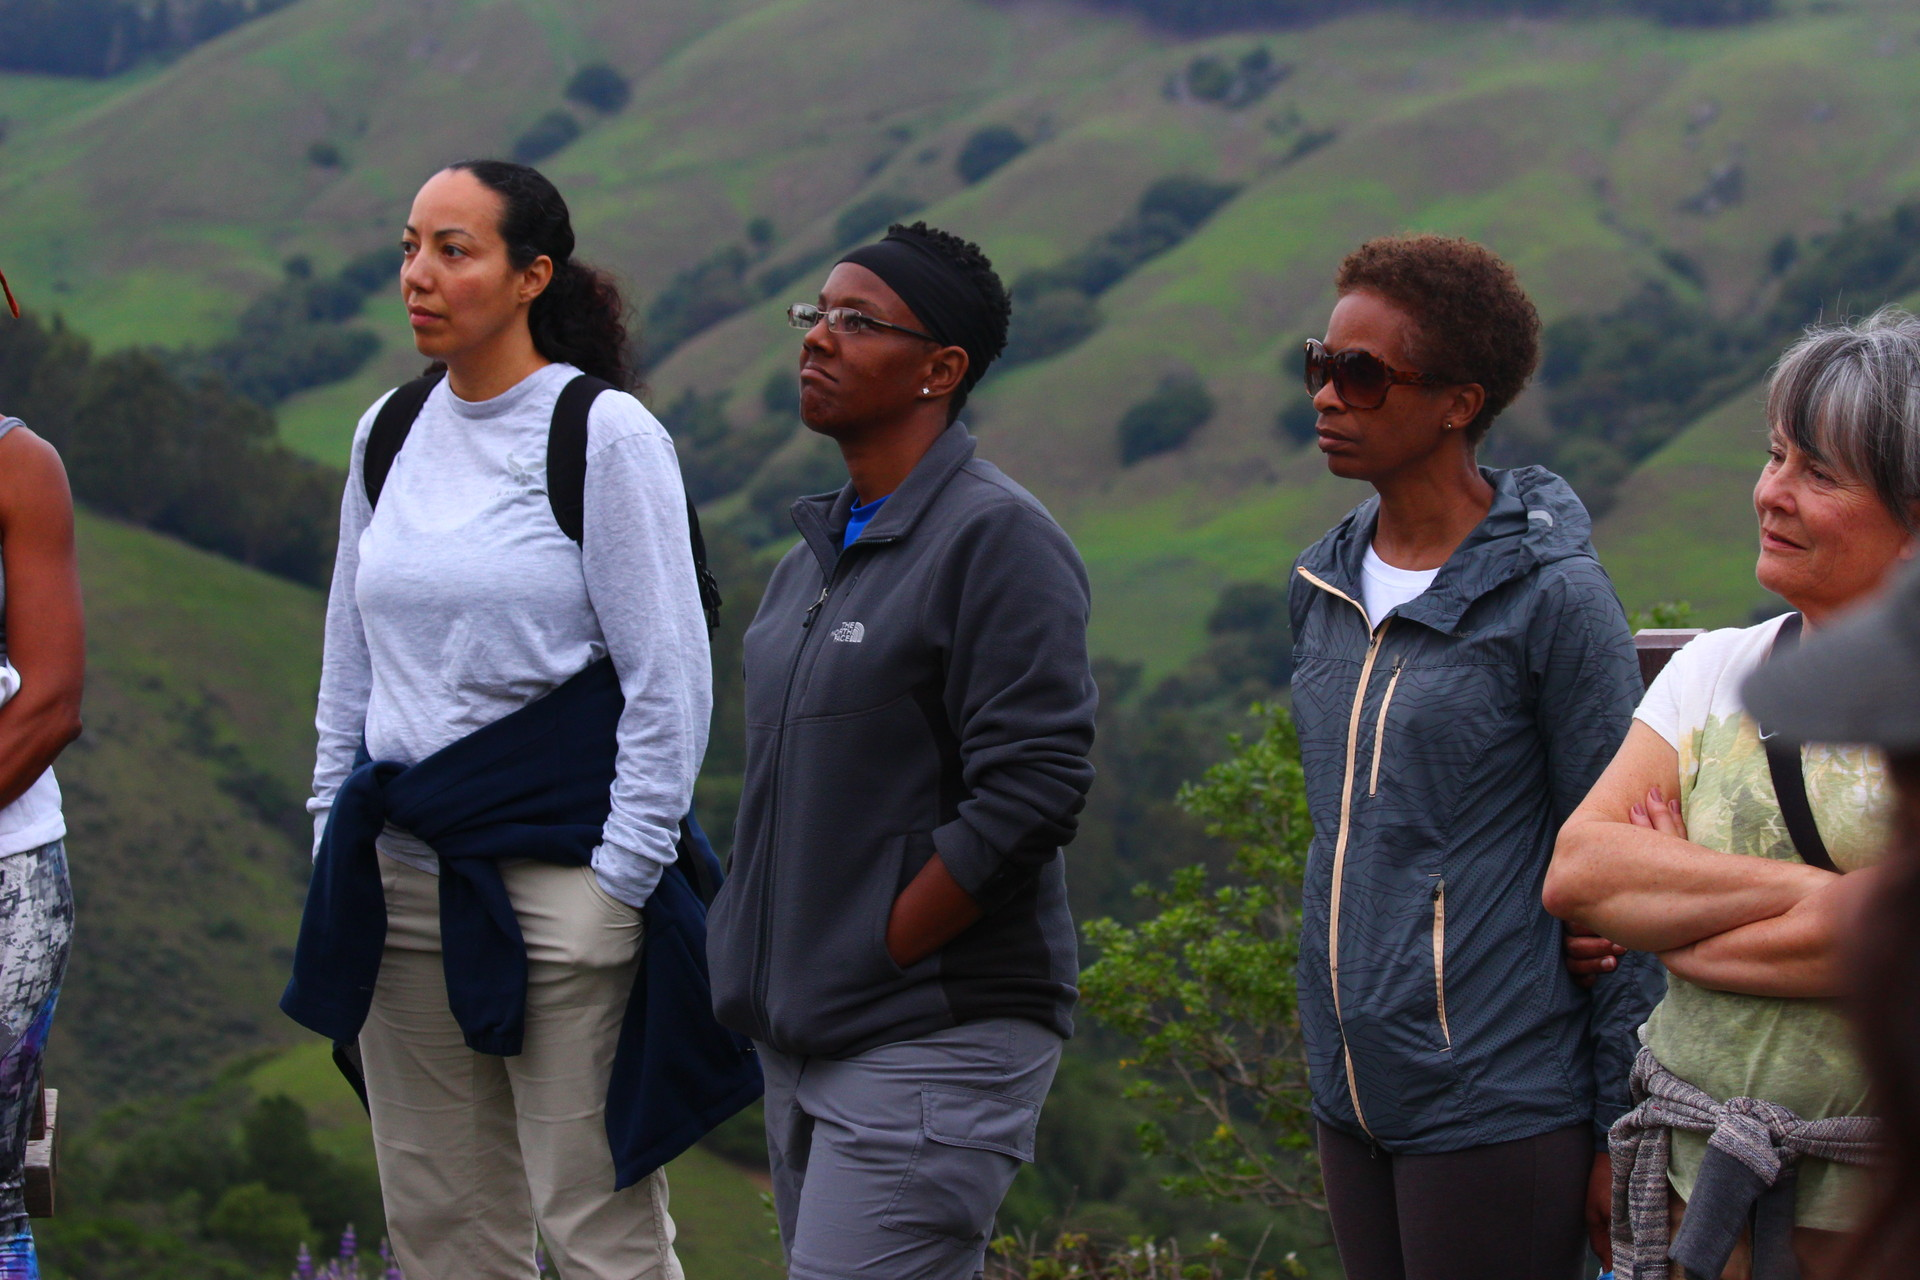 Hikers reflecting on Harriet Tubman's connection to nature.